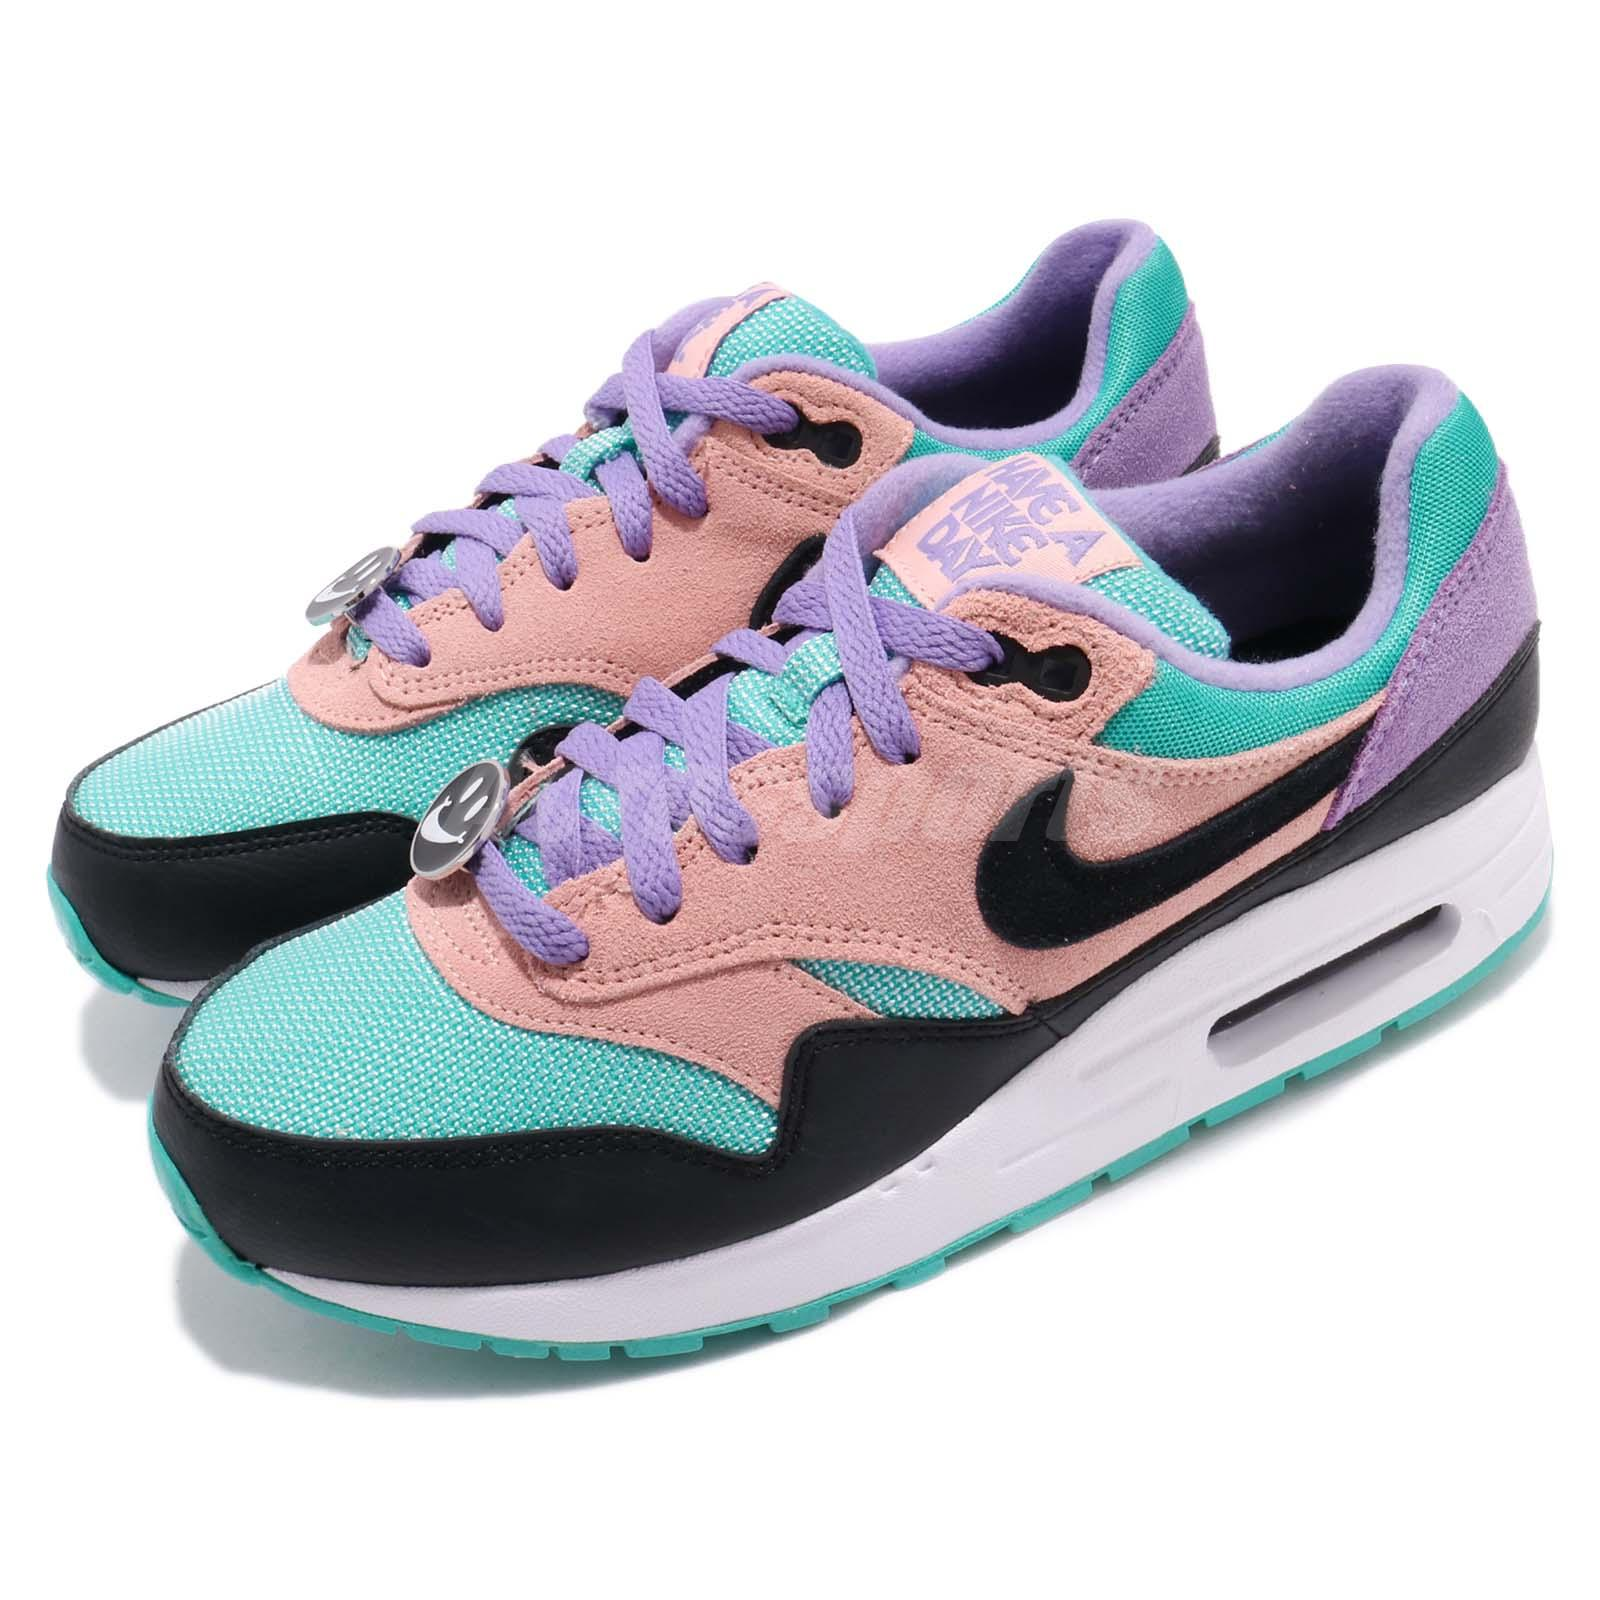 Muelle del puente taquigrafía Inspector  Nike Air Max 1 GS NK Have A Nike Day Kid Youth Women Shoes Sneakers  AT8131-001   eBay